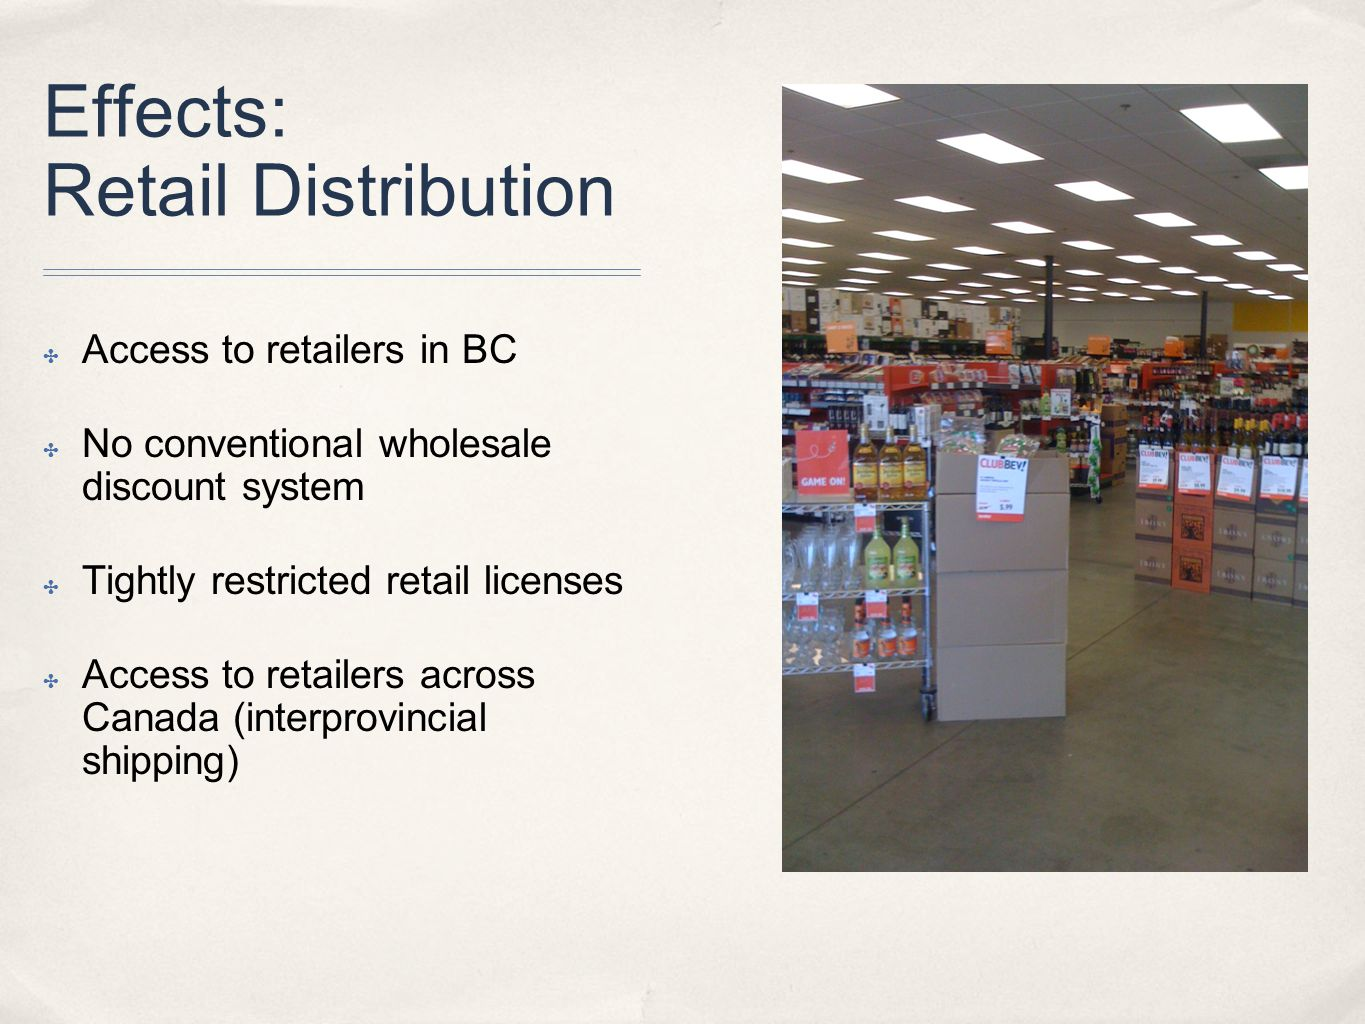 Effects: Retail Distribution ✤ Access to retailers in BC ✤ No conventional wholesale discount system ✤ Tightly restricted retail licenses ✤ Access to retailers across Canada (interprovincial shipping)